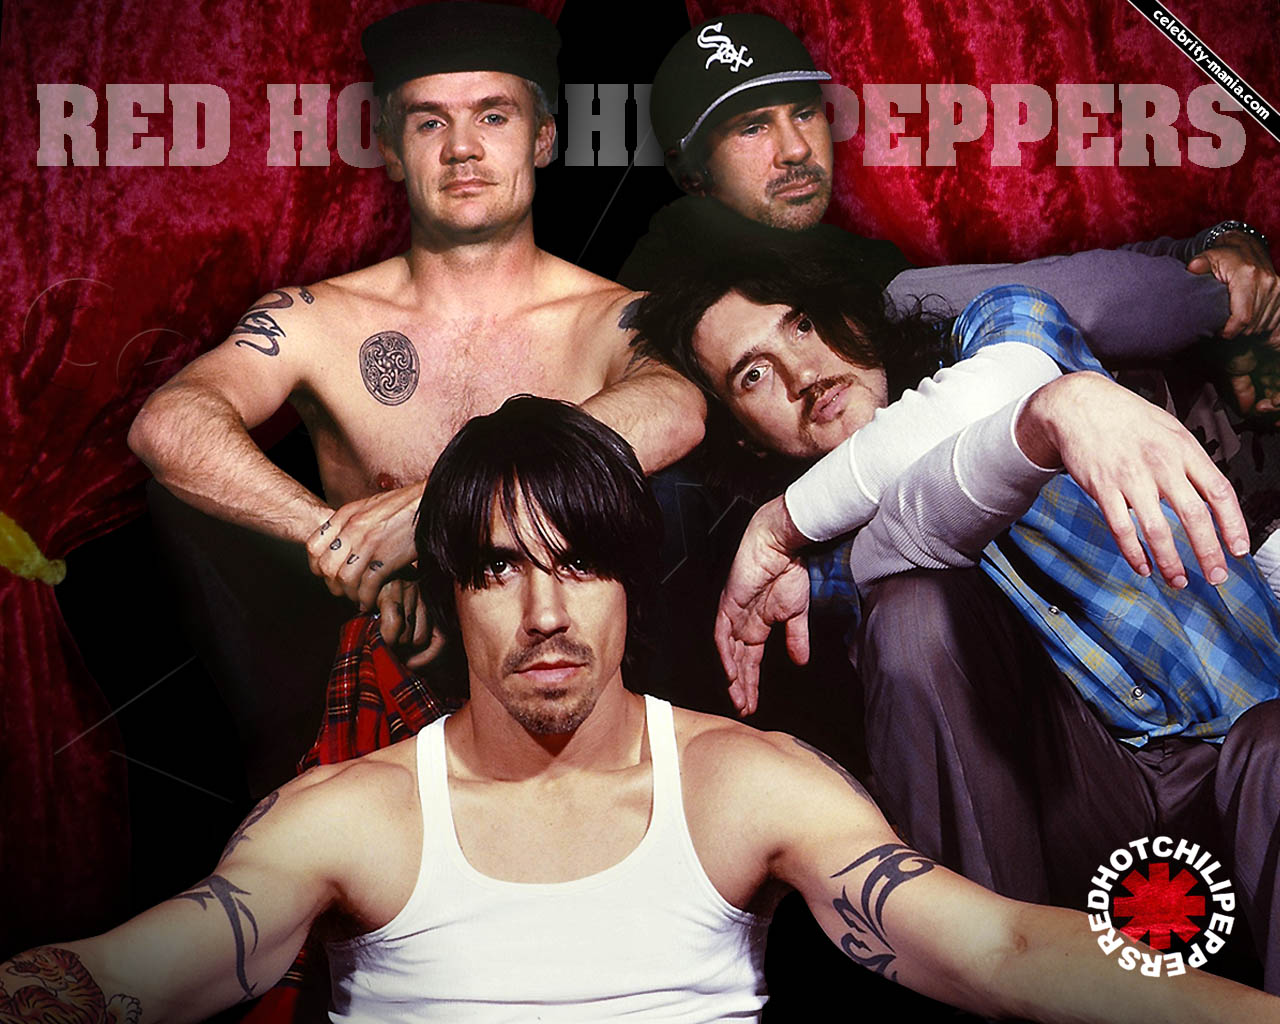 Red Hot Chilli Pepers - 1280x1024